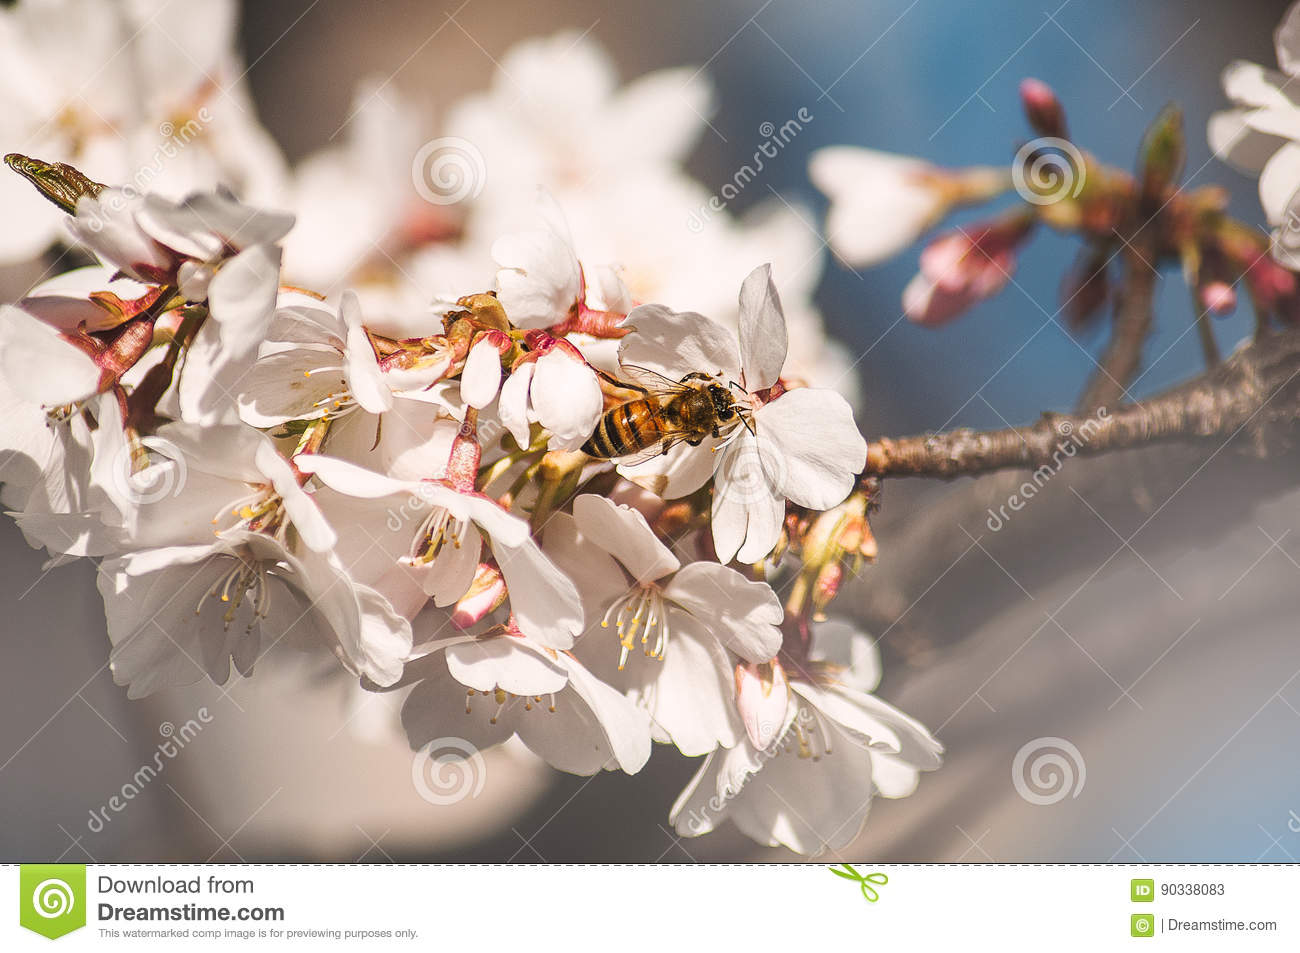 Bee smelling these blossoms